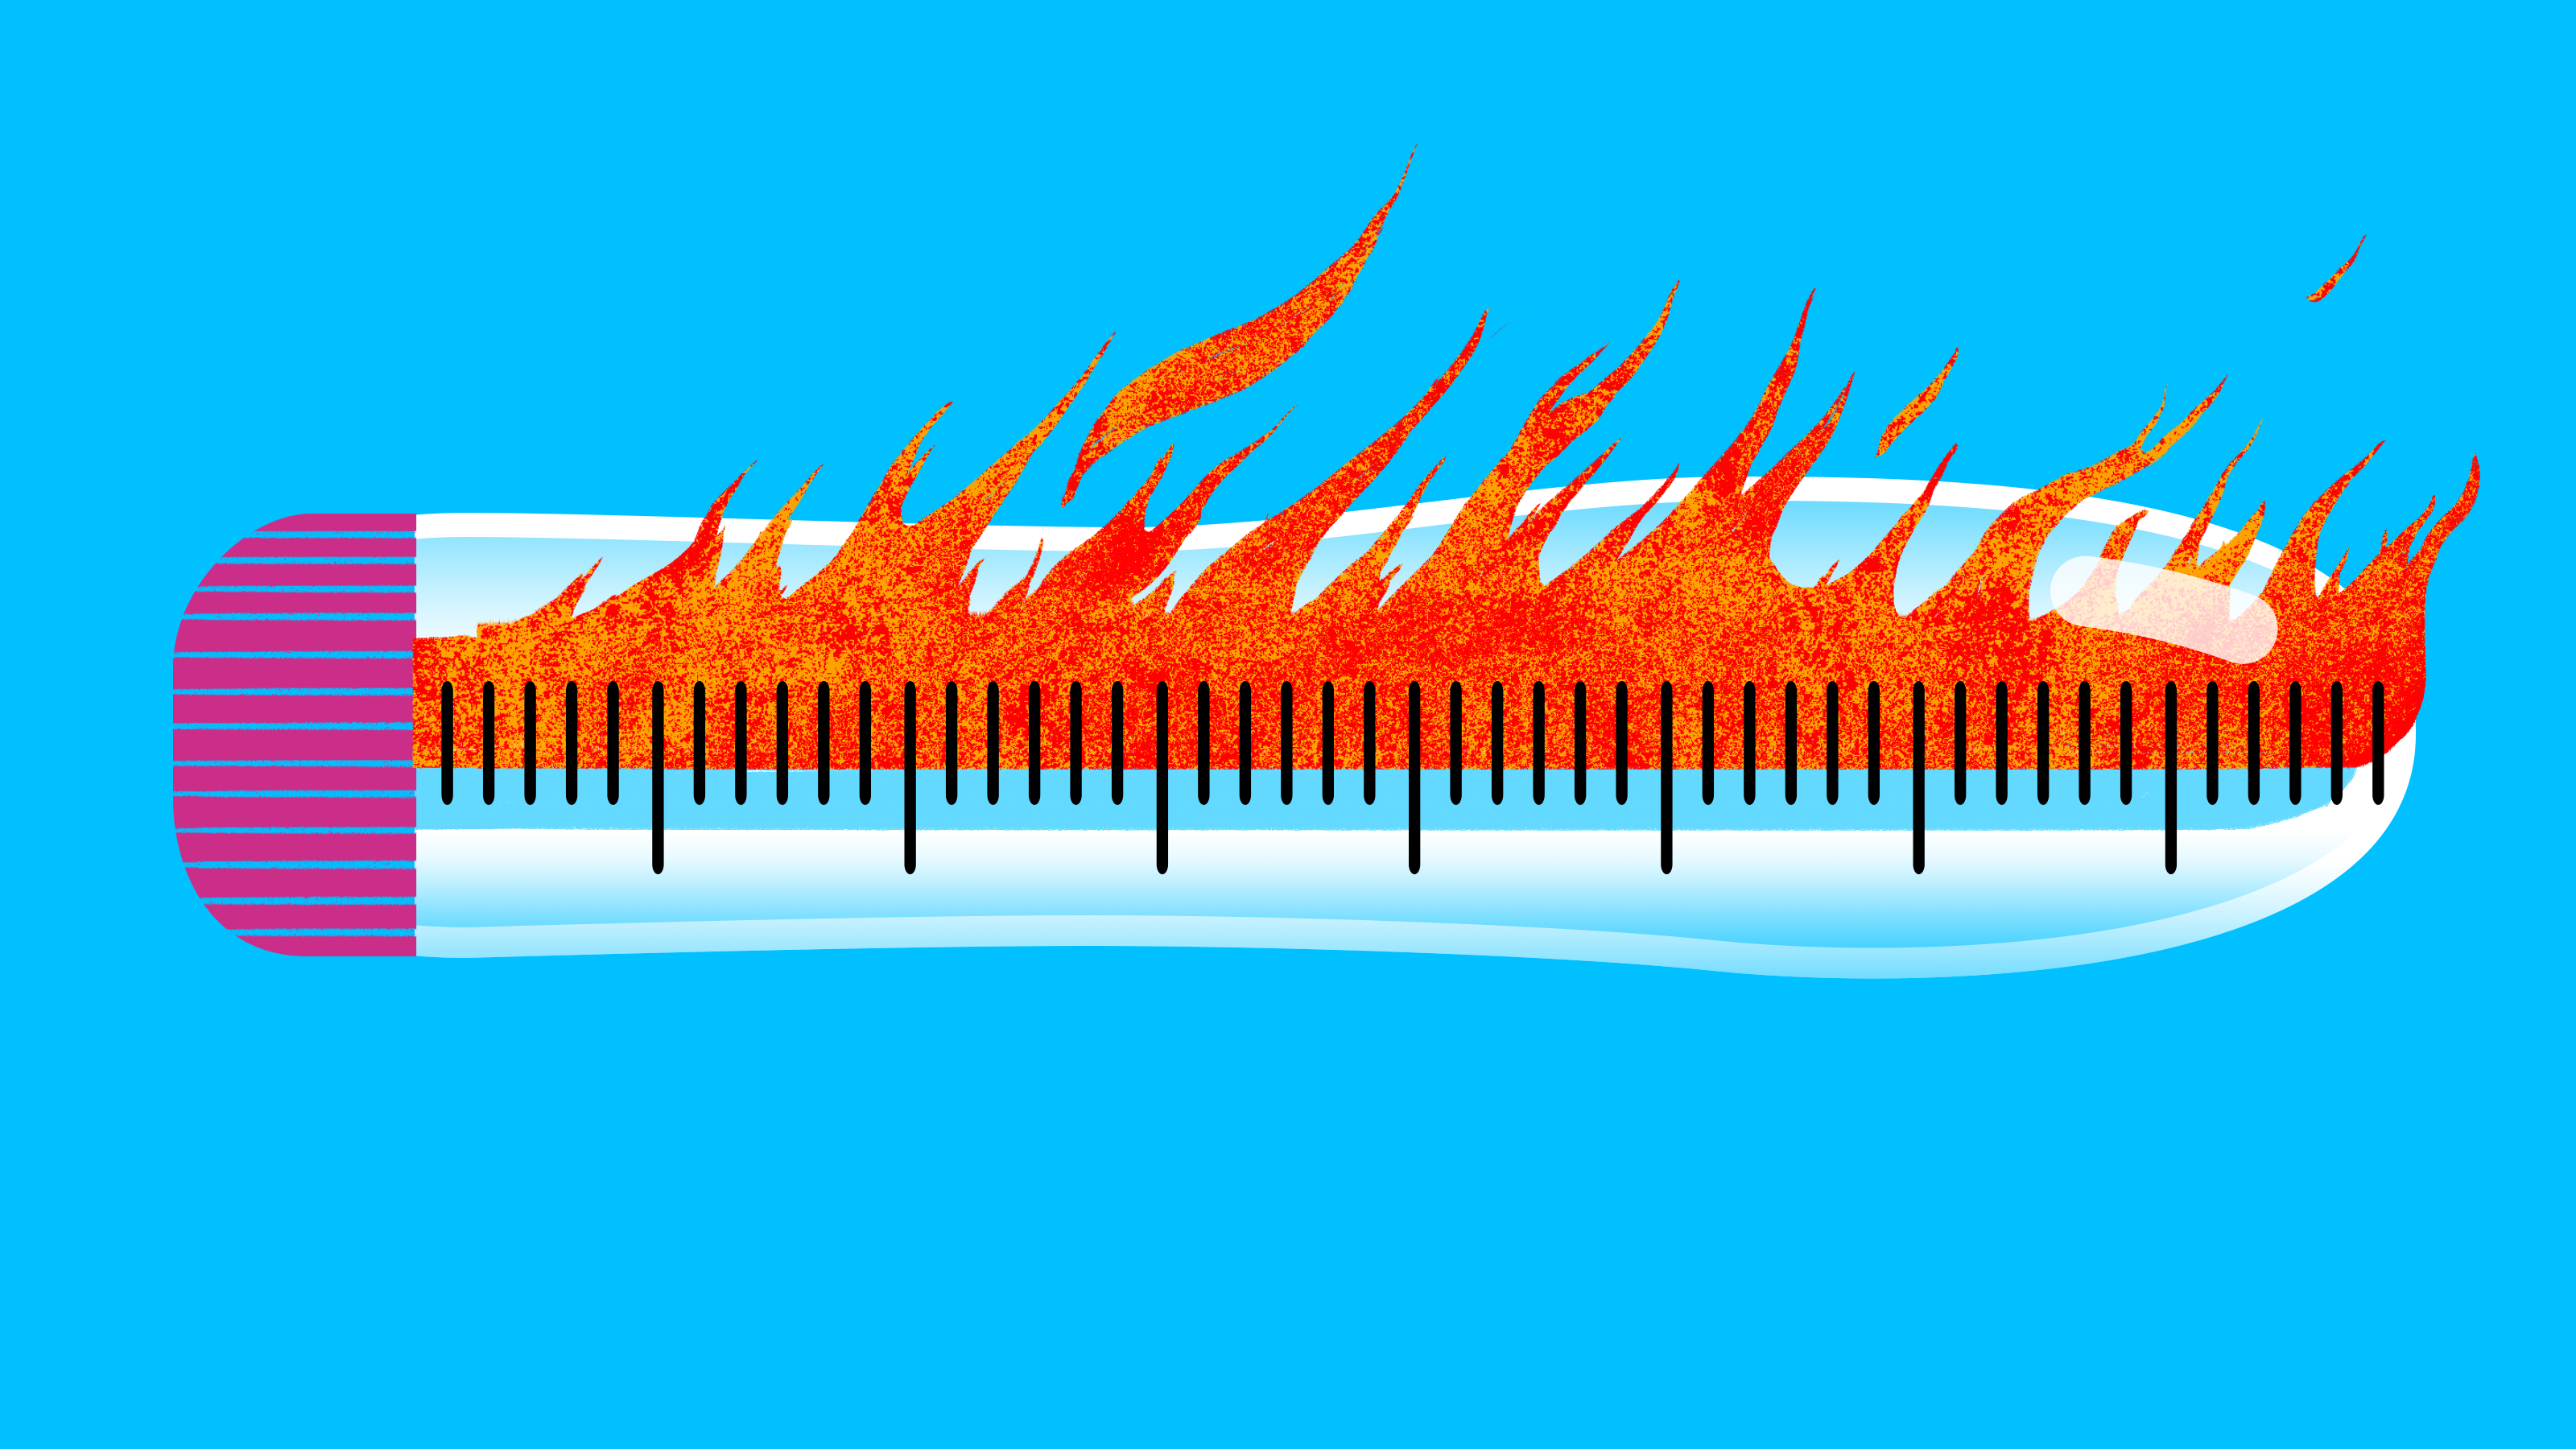 Dildos And Nude Fundraising Show How The Climate Crisis Is Changing Norms